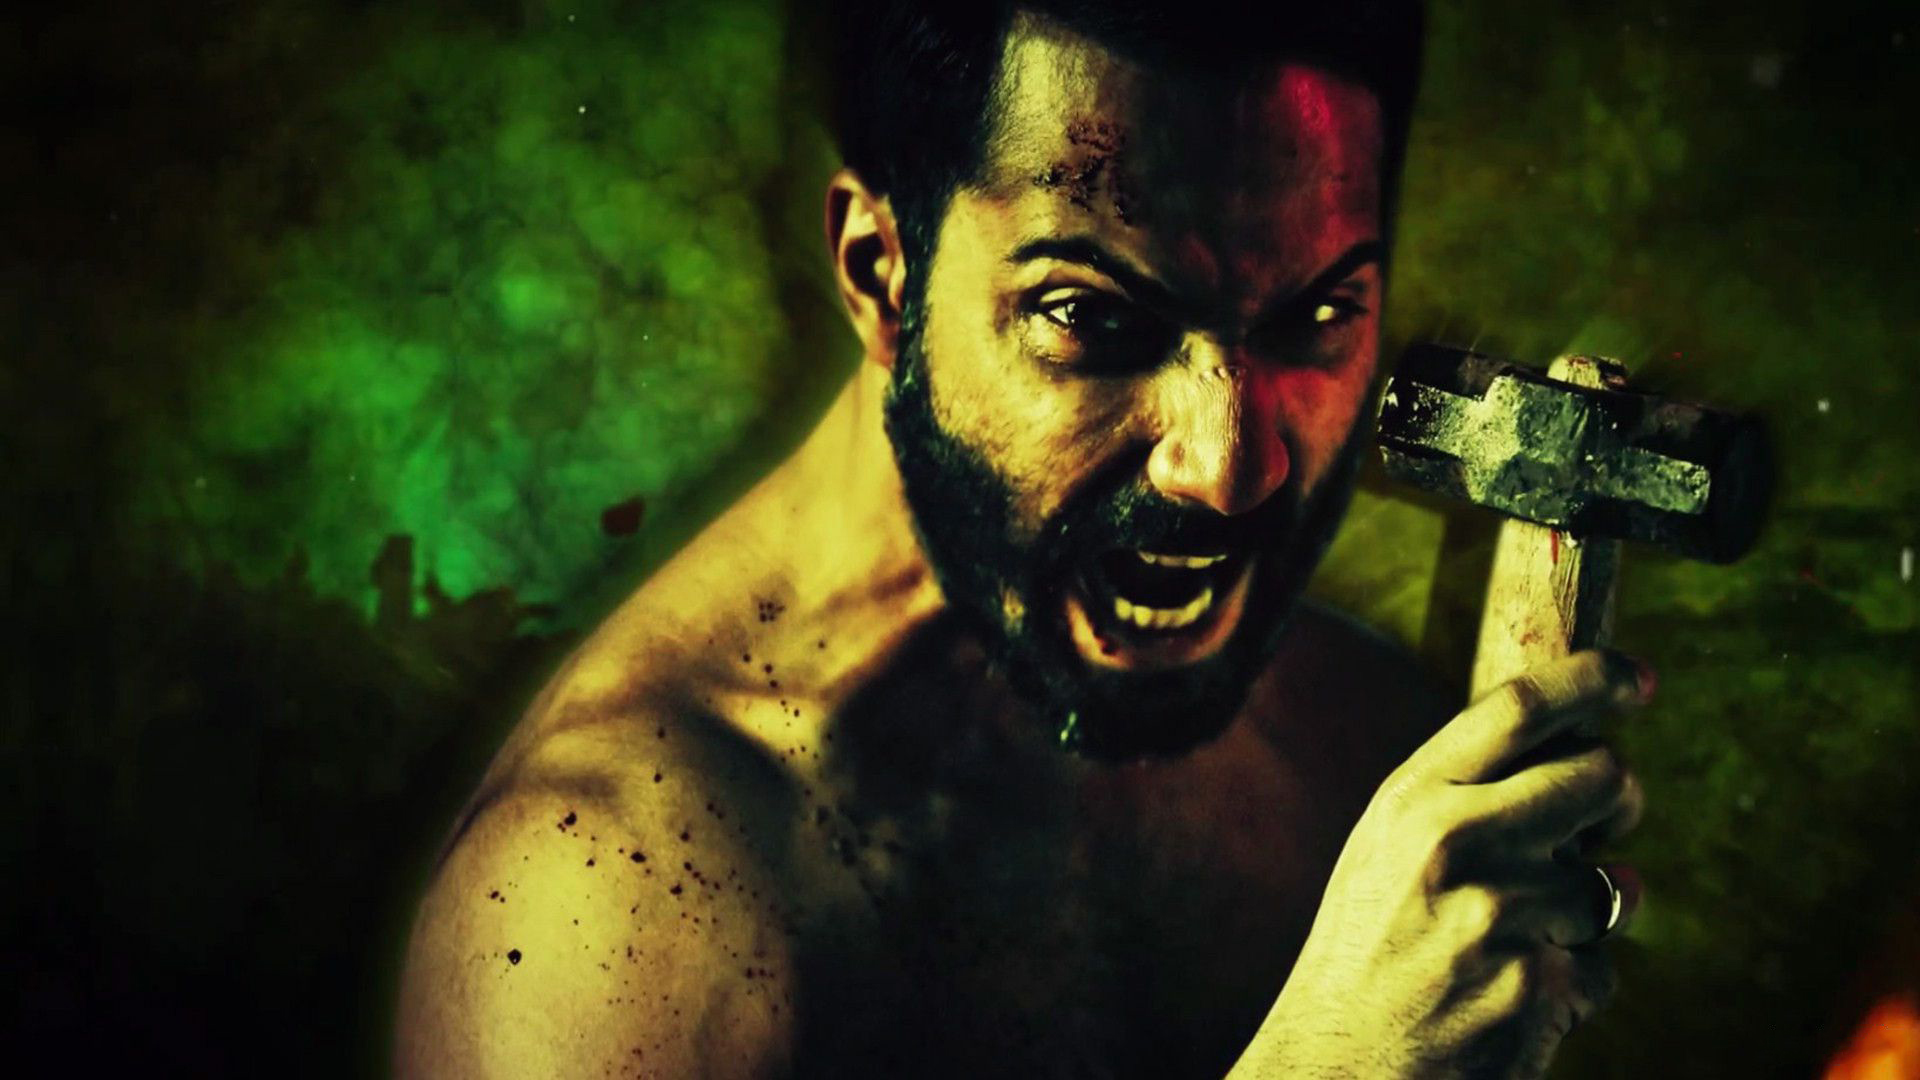 Varun Dhawan First Official Teaser HD Video from Badlapur Film